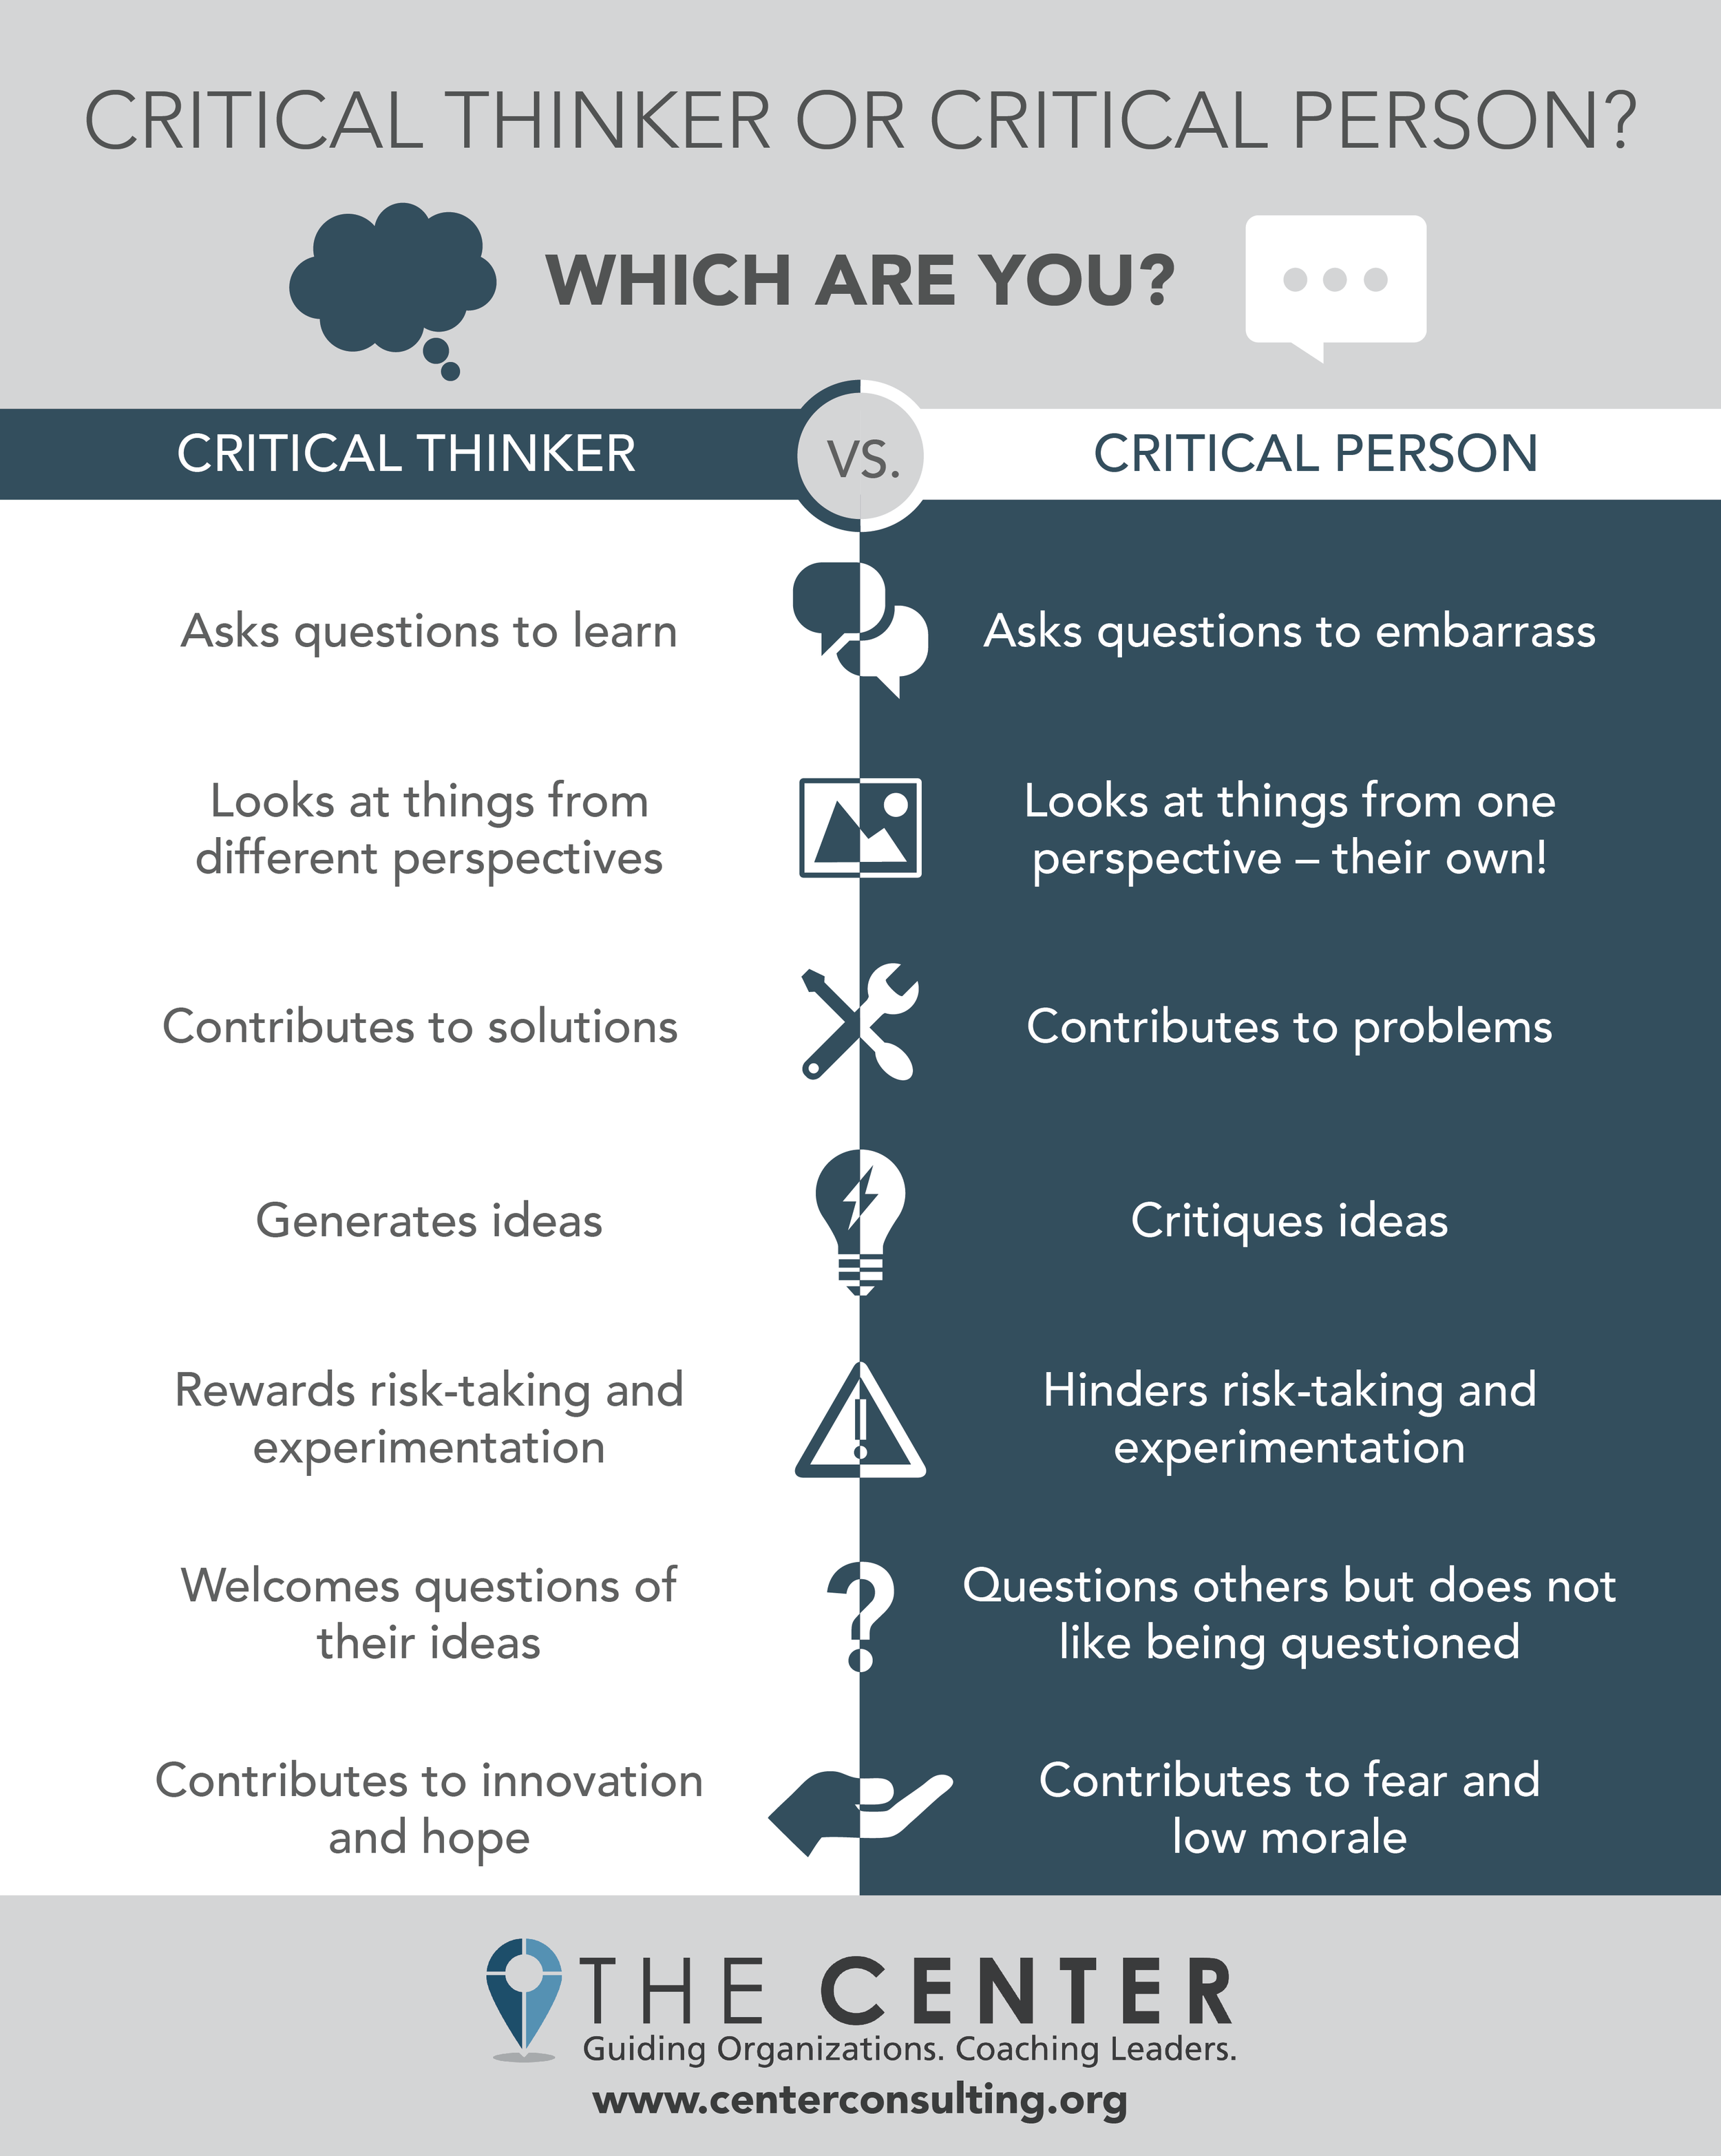 Critical Thinker Vs. Critical Person: Which are you? [Infographic] - The Center Consulting Group - Leadership Coaching and Organizational Consulting for Businesses, Churches, and Non-Profits